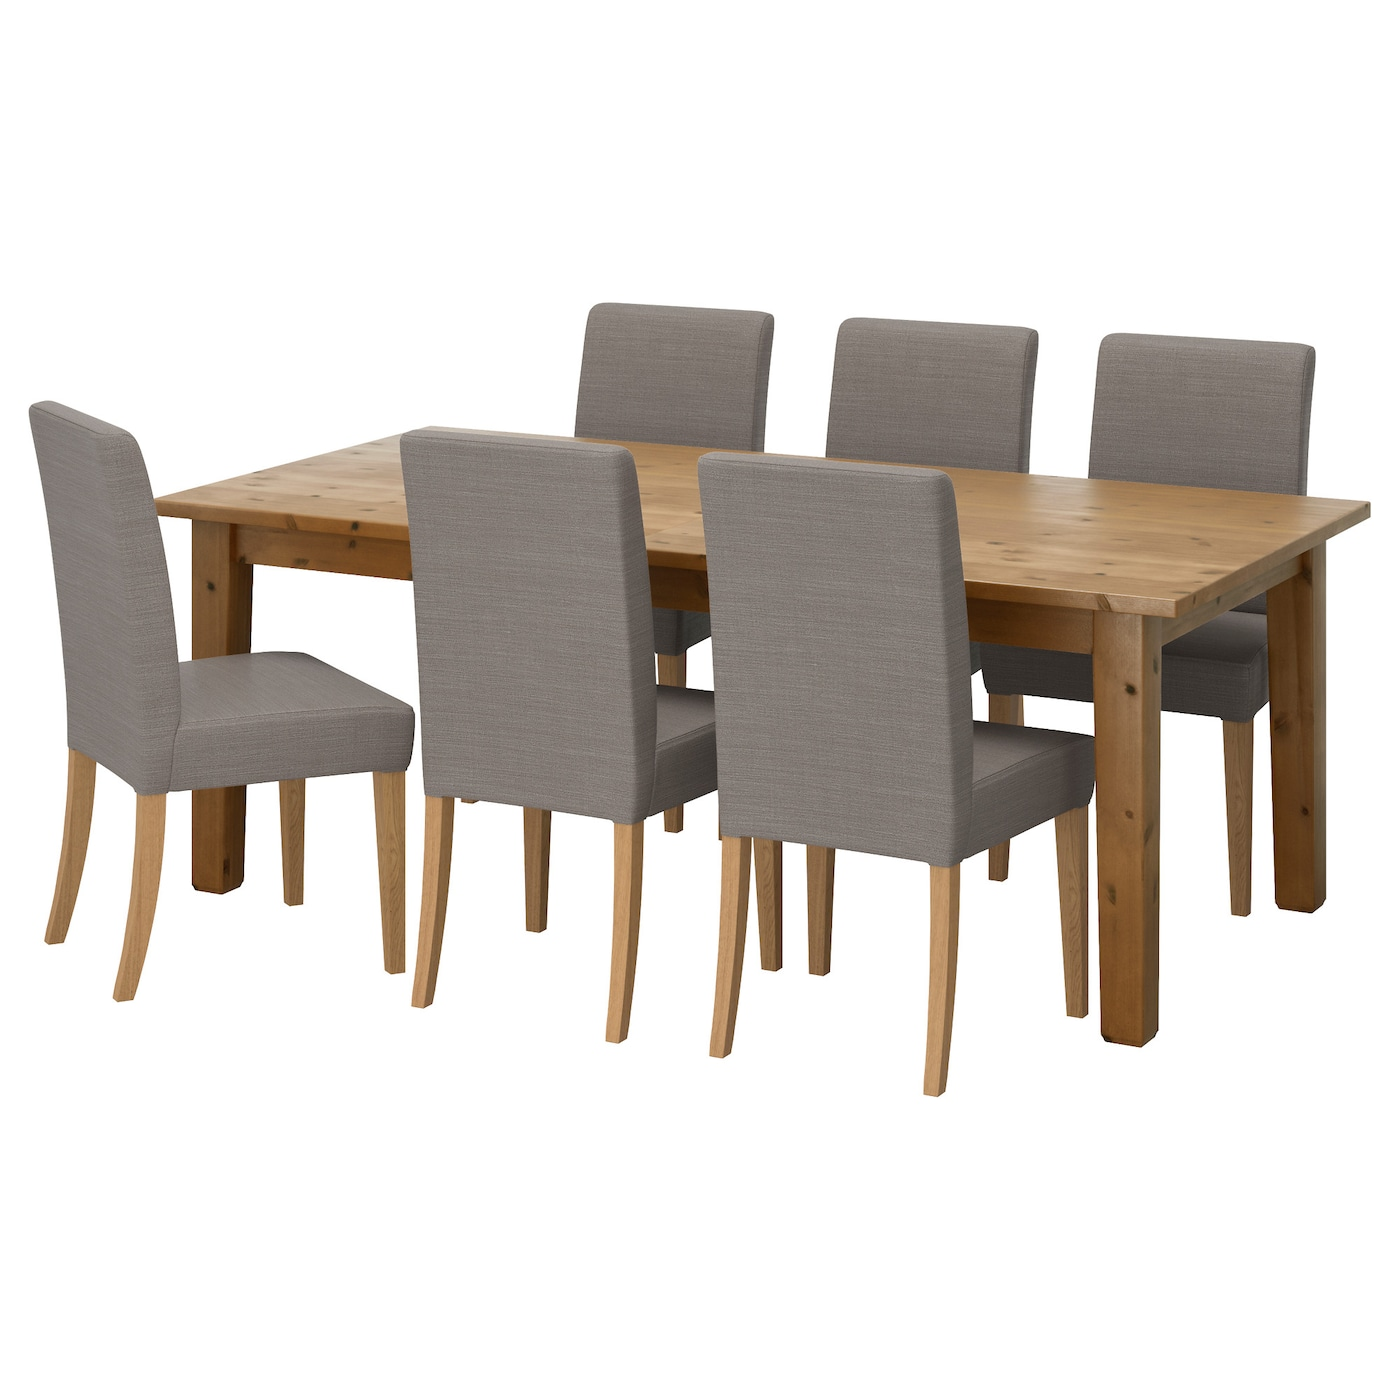 IKEA HENRIKSDAL/STORNÄS table and 6 chairs